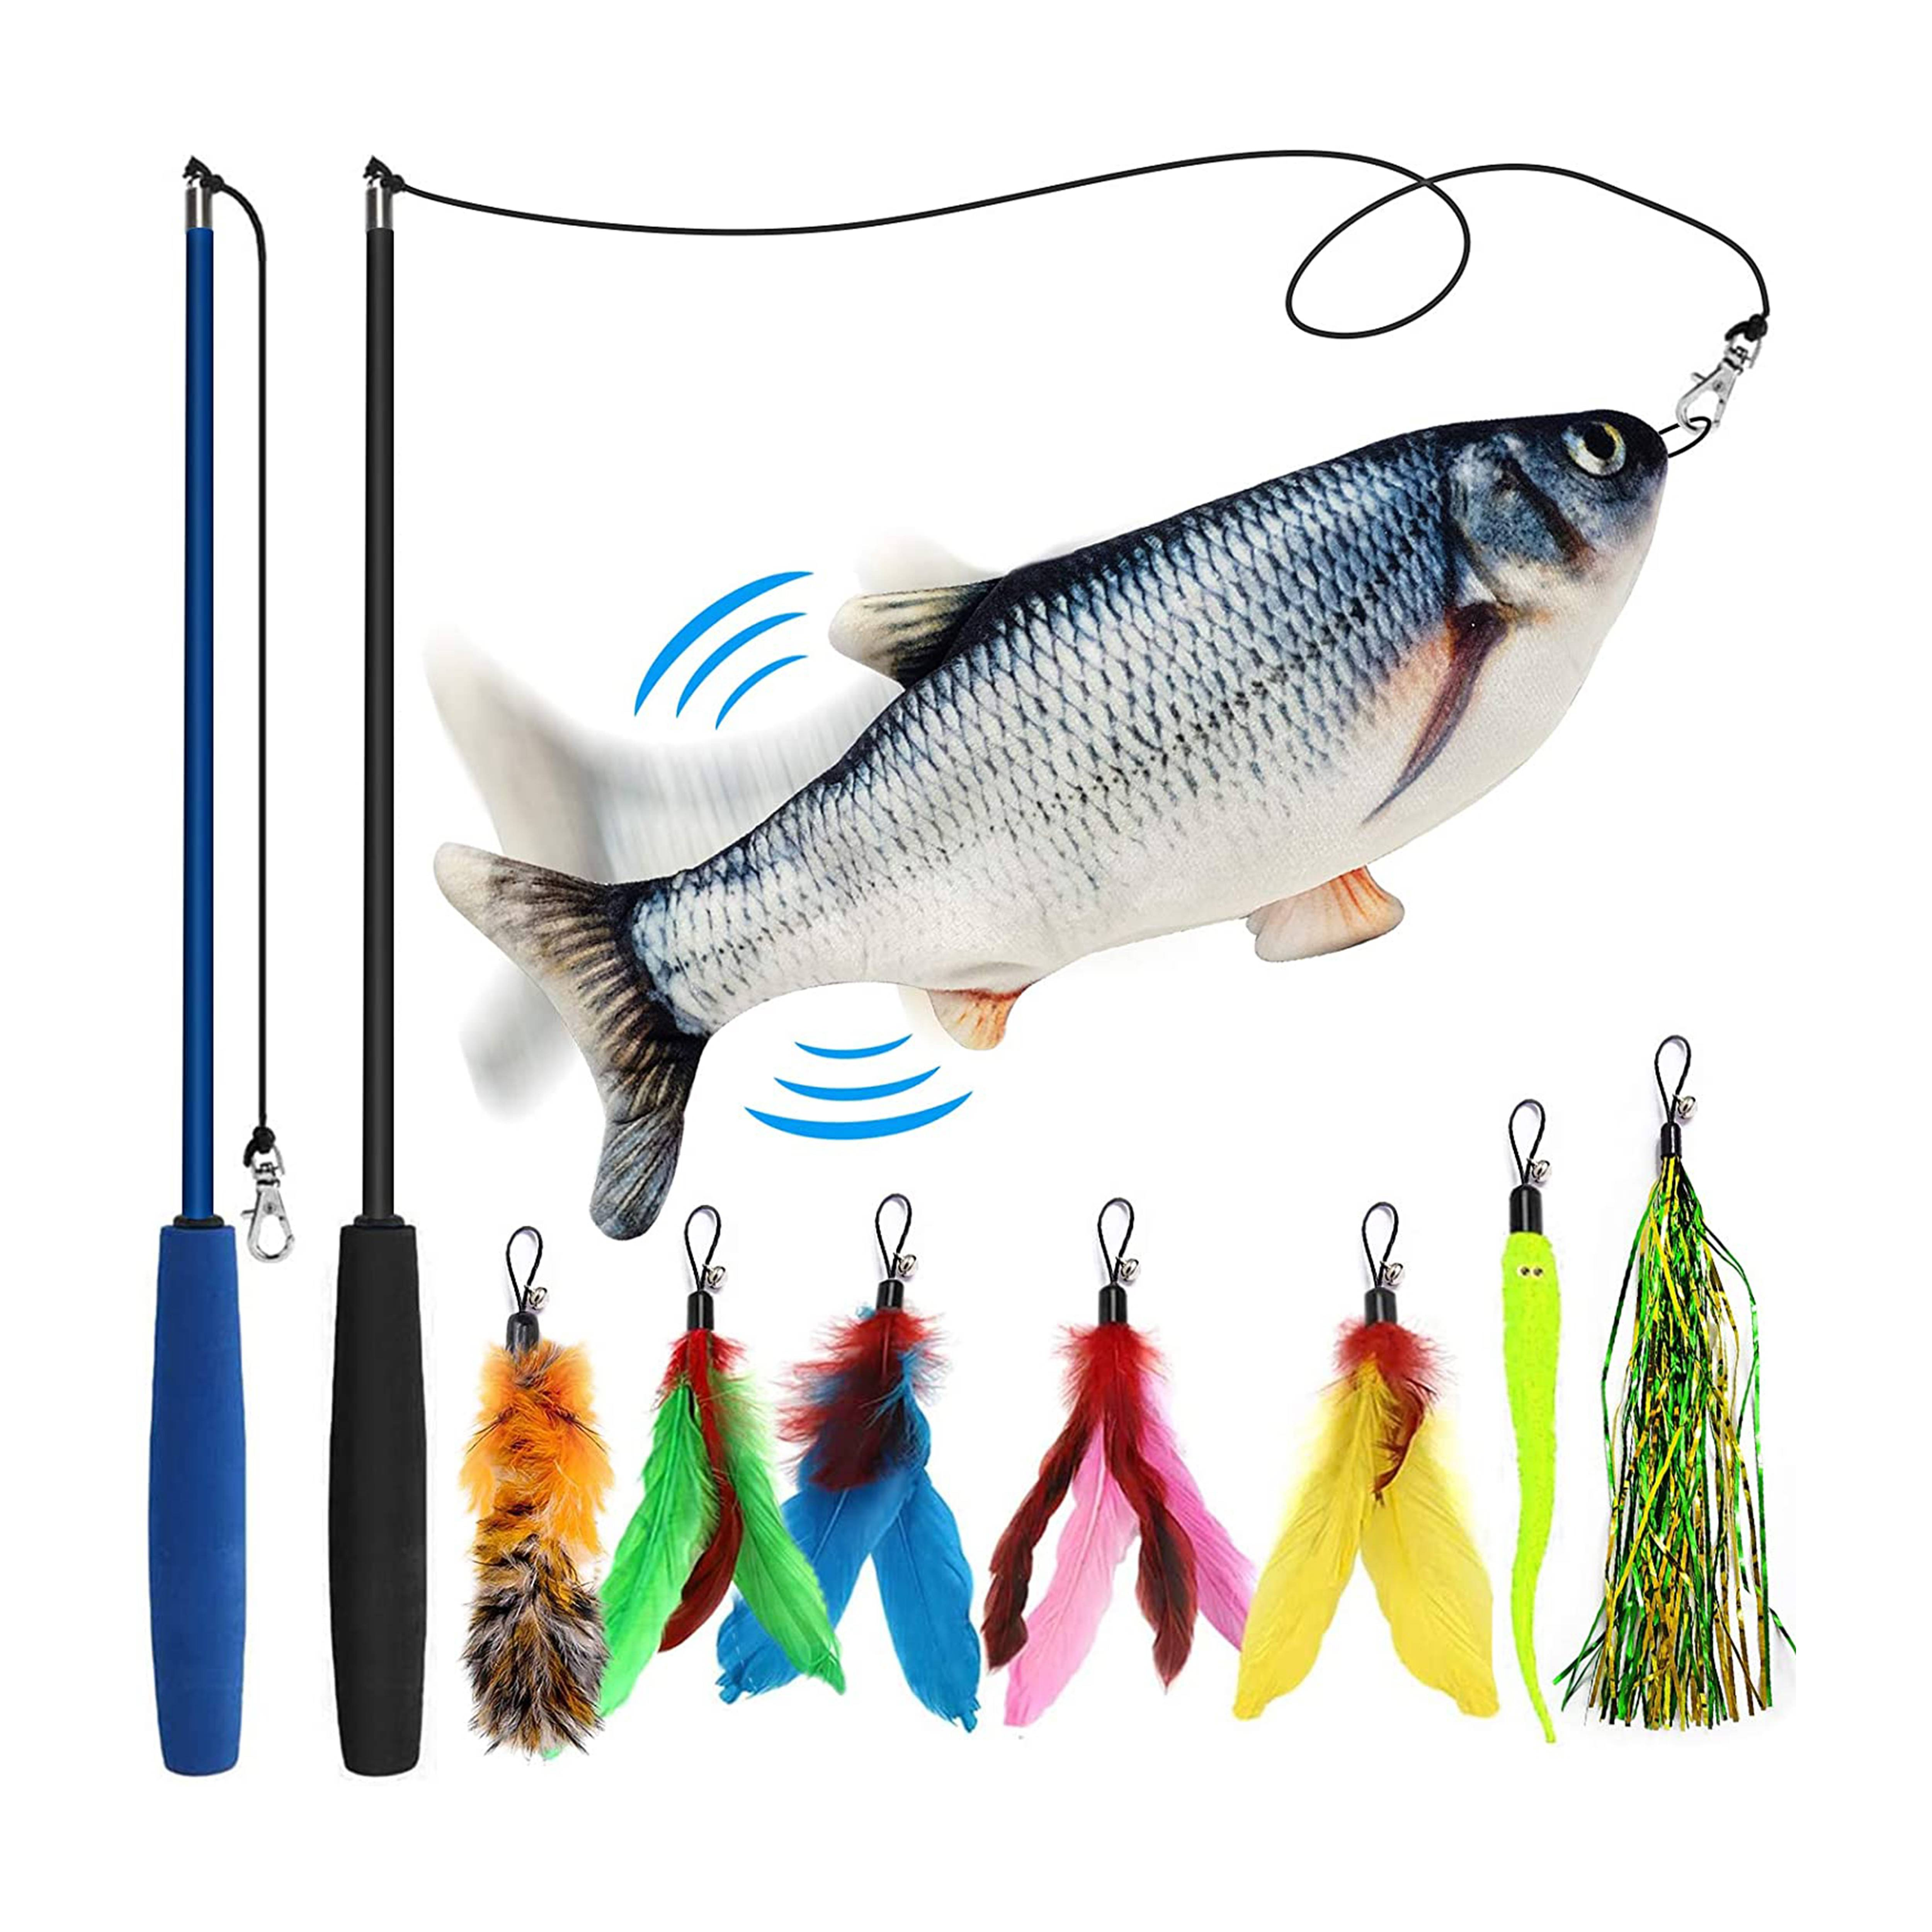 Interactive Cotton electric waggling cat toy moving fish Featured Image